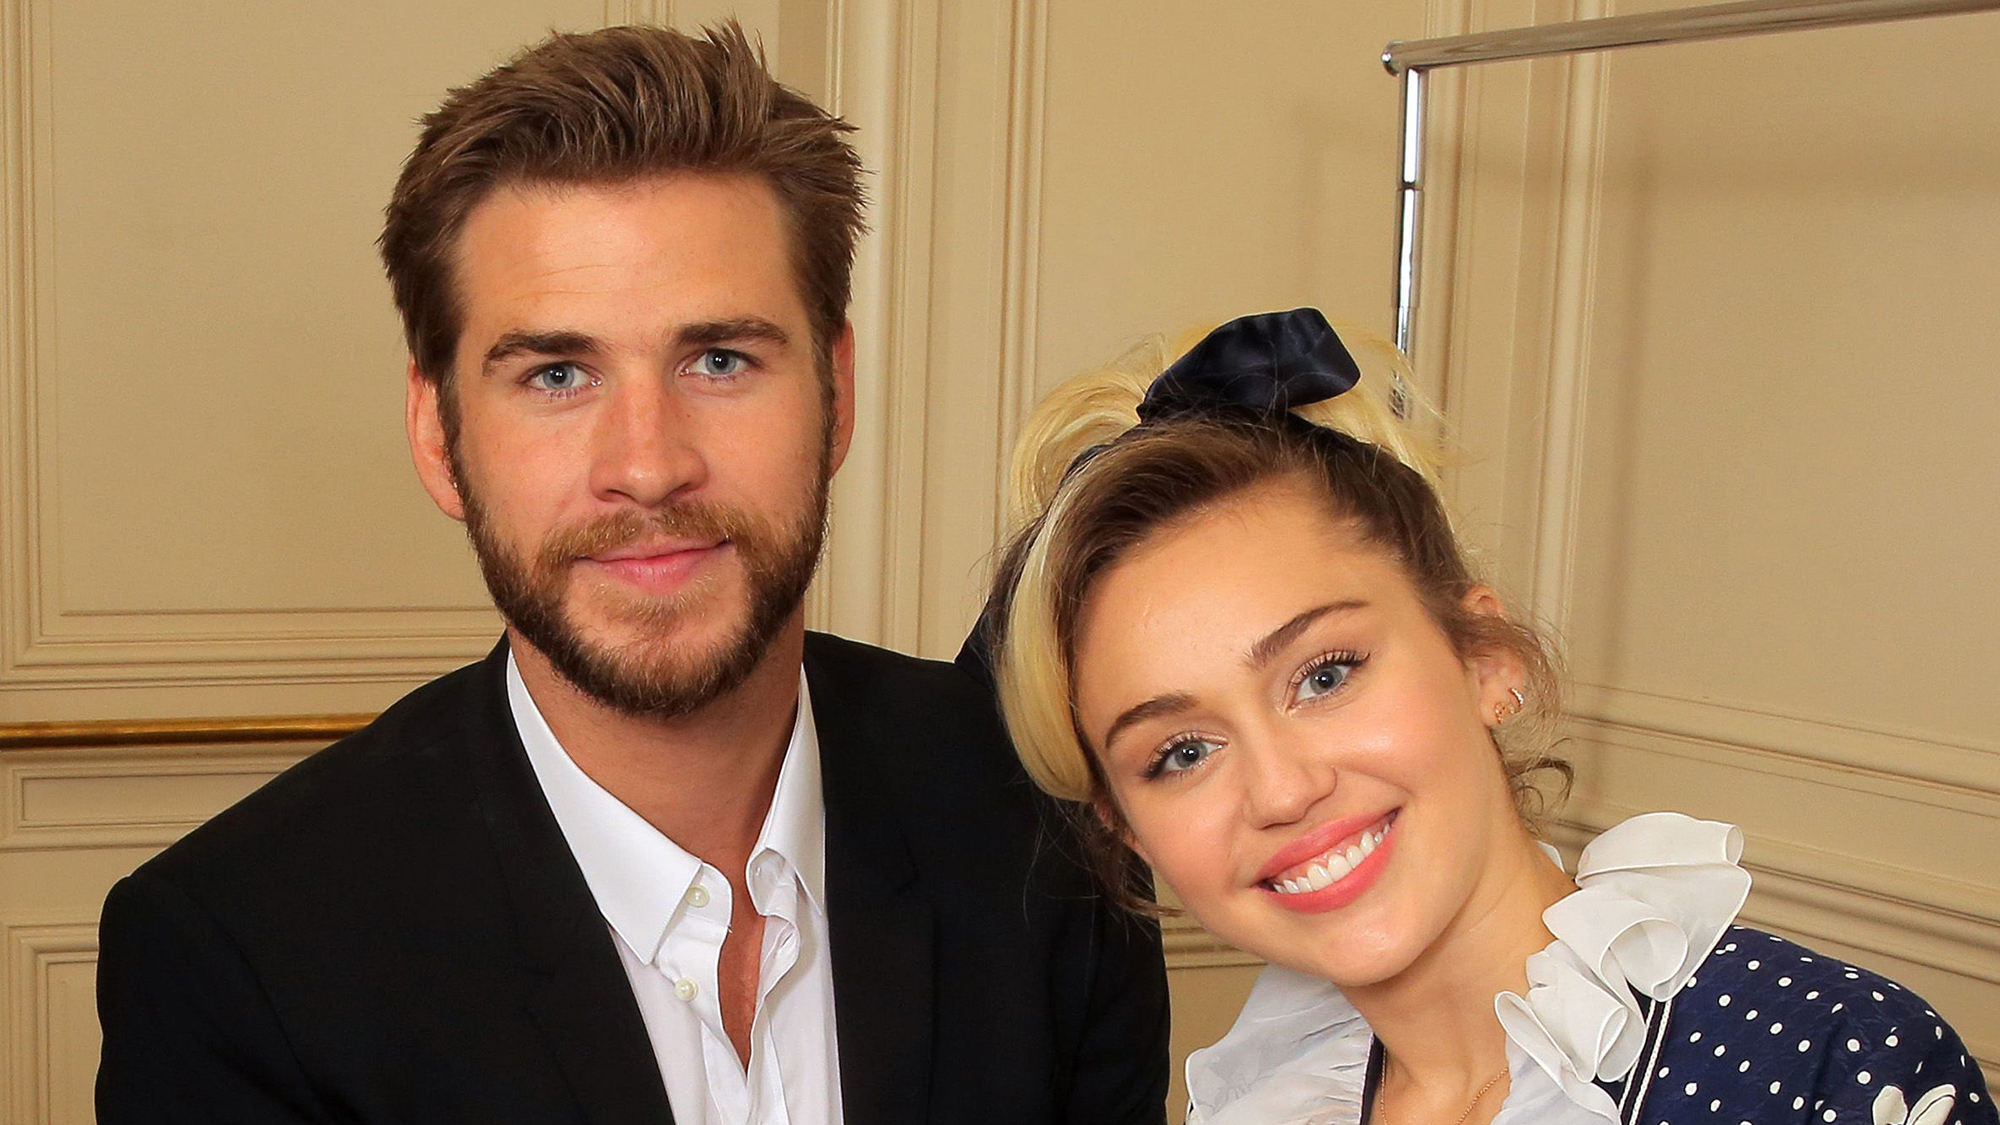 Liam Hemsworth just shared a heartbreaking photo of what's left of his and Miley Cyrus' house after the wildfires